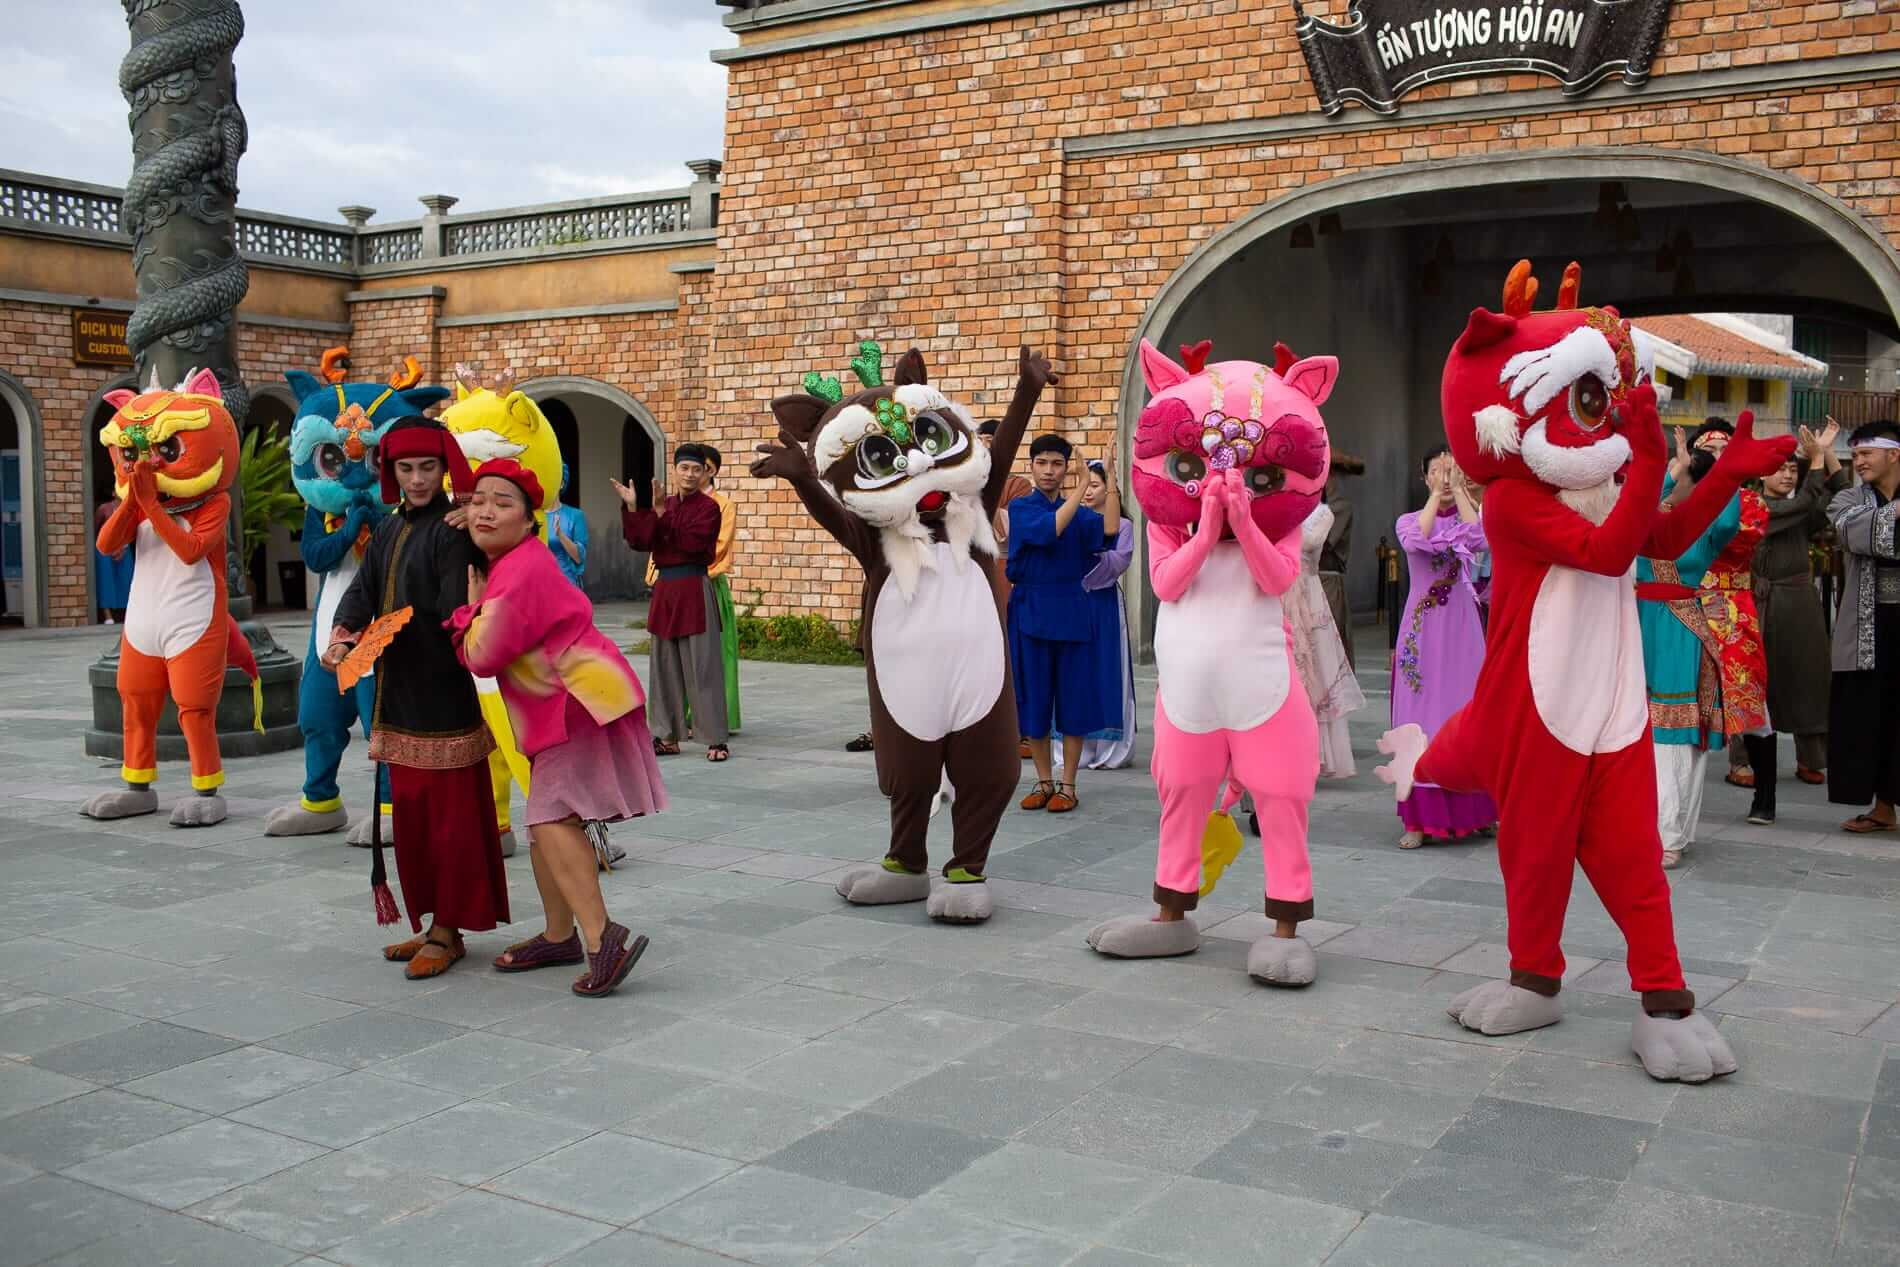 performers at the gates of Impressions Theme Park in Hoi An